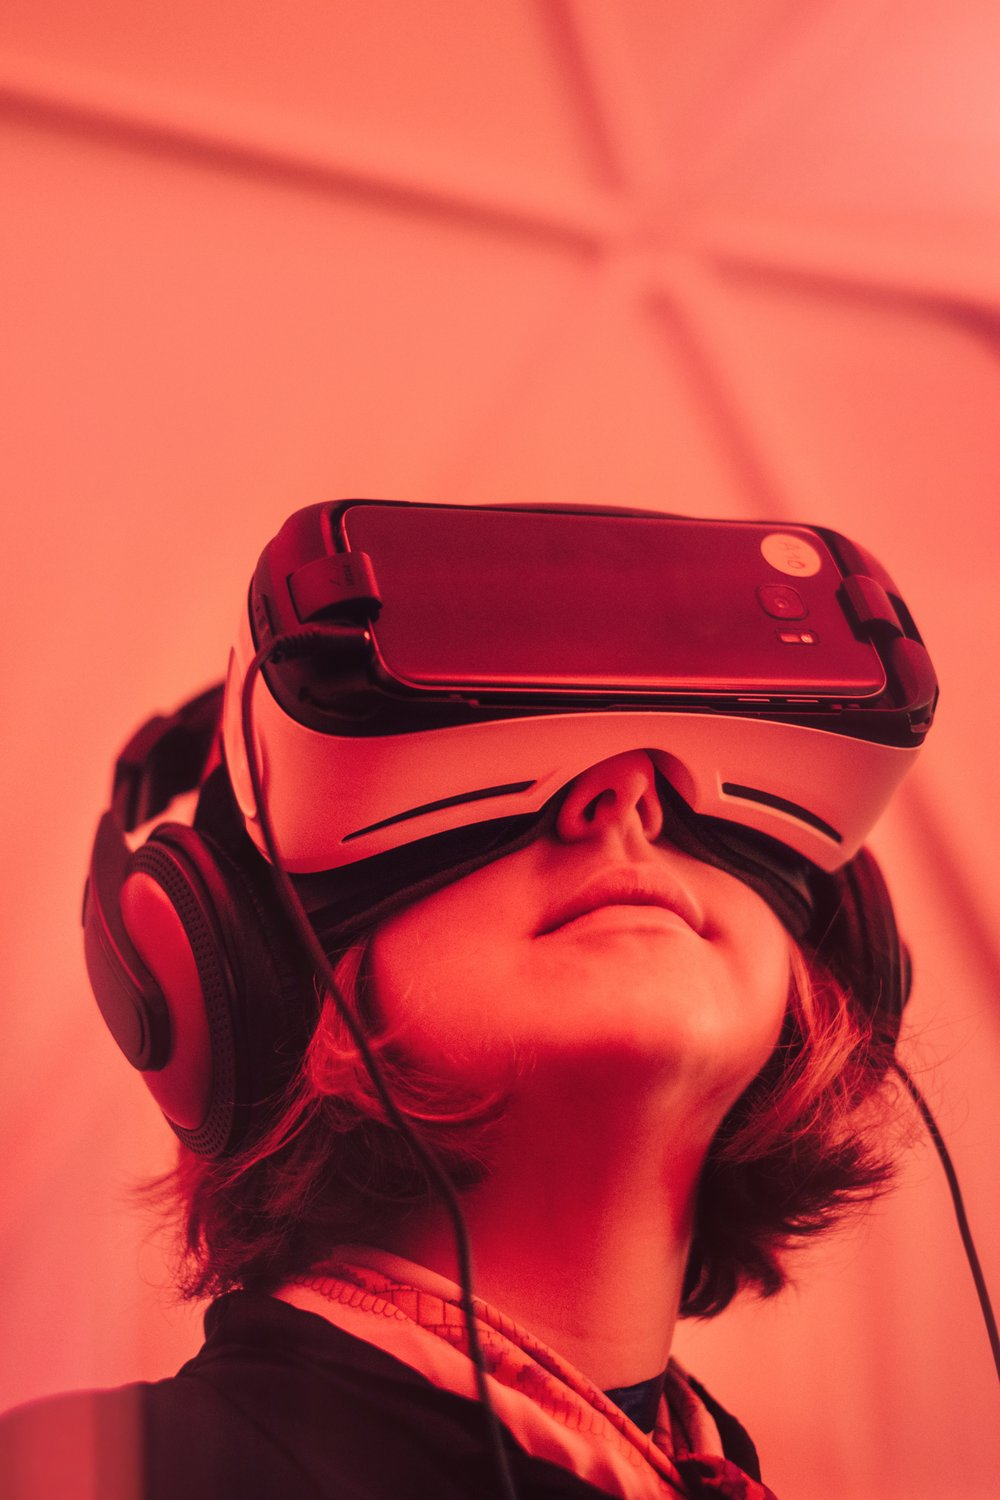 Prepare for an altered reality experience in 2018. (Photo credit: Samuel Zeller via Unsplash)